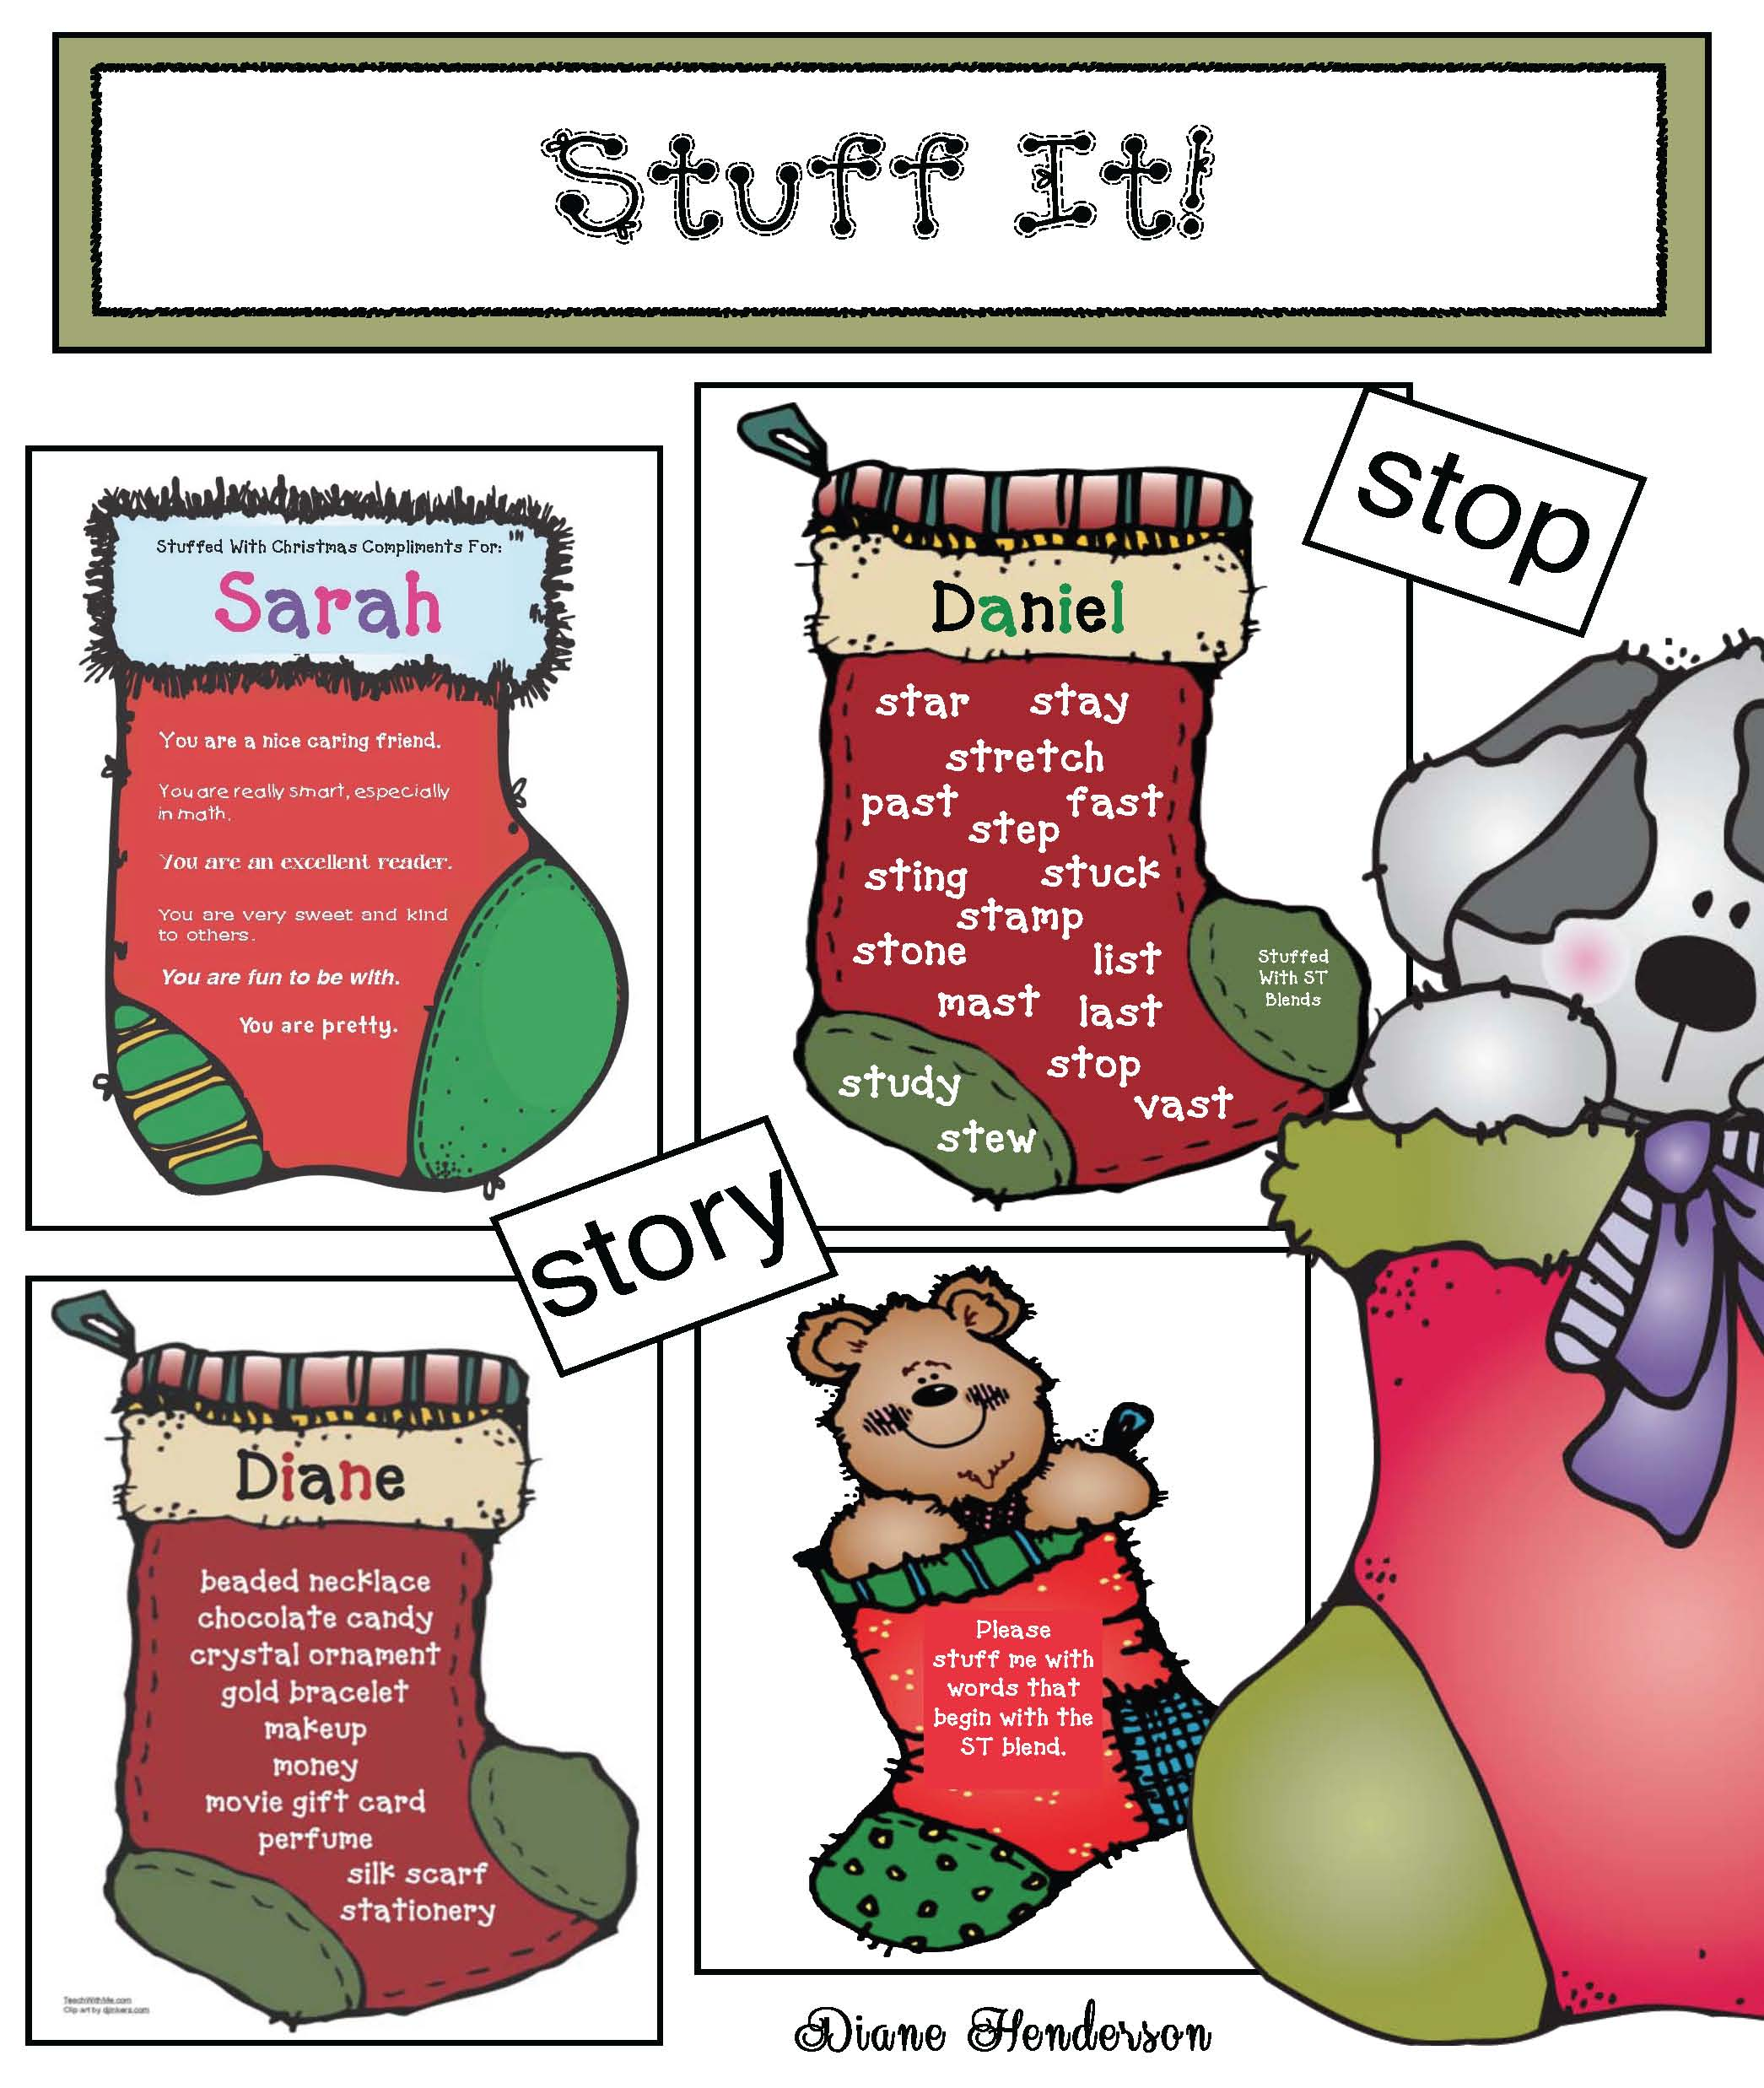 spin a story wheels, creative writing activities, ST blend activities, december writing prompts, elf on a shelf activities, directional writing, christmas centers